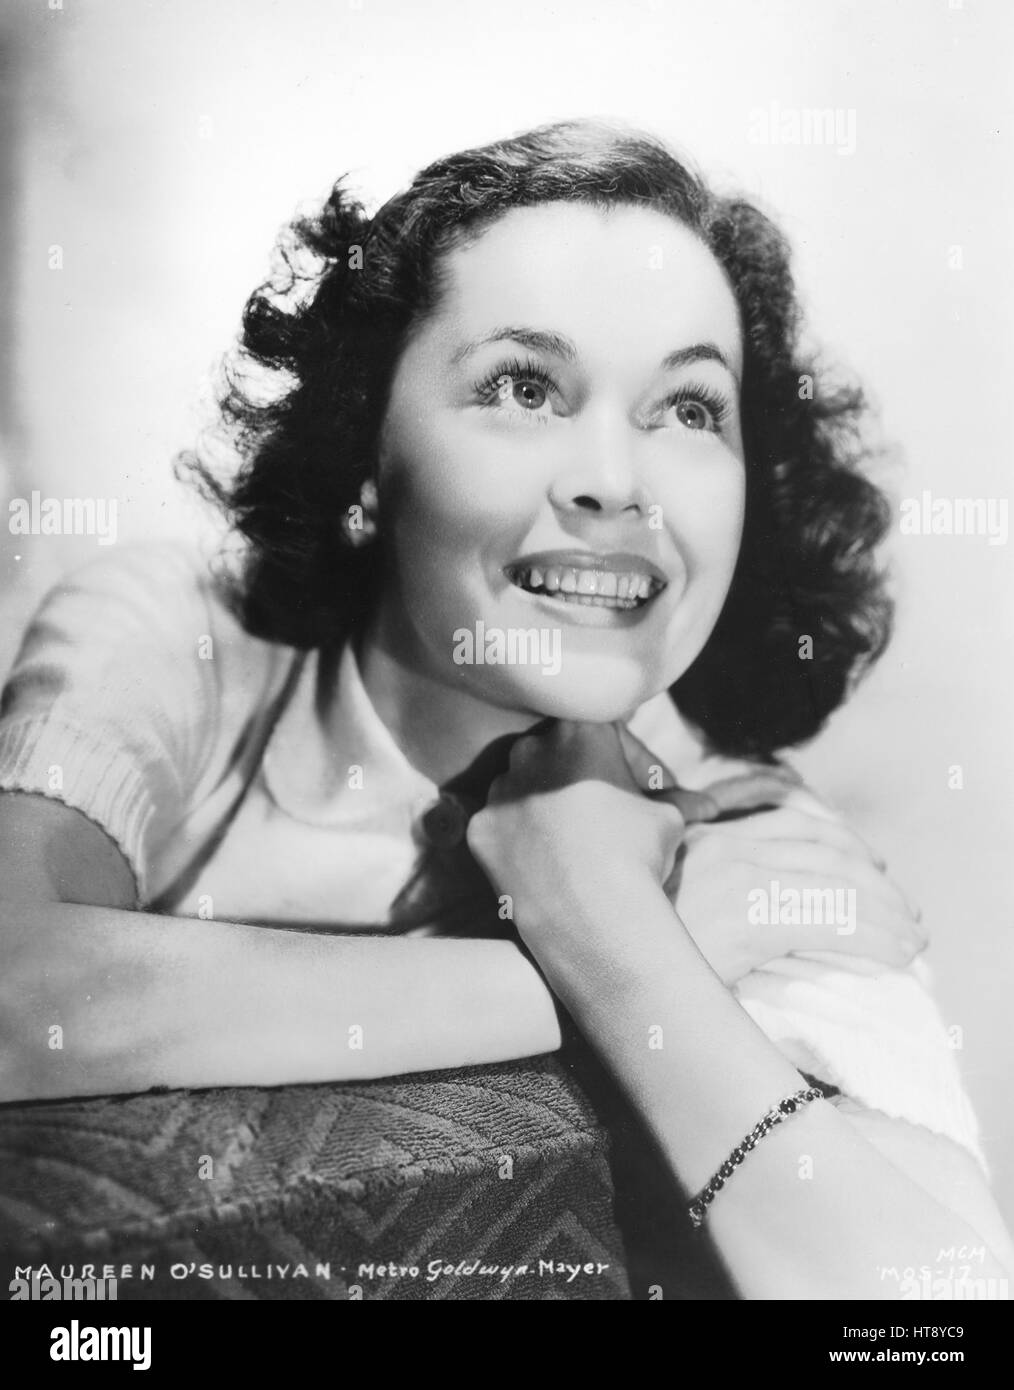 'Blue-eyed Maureen O'Sullivan, M-G-M featured player, seems to be one of the busiest actresses in Hollywood, - Stock Image